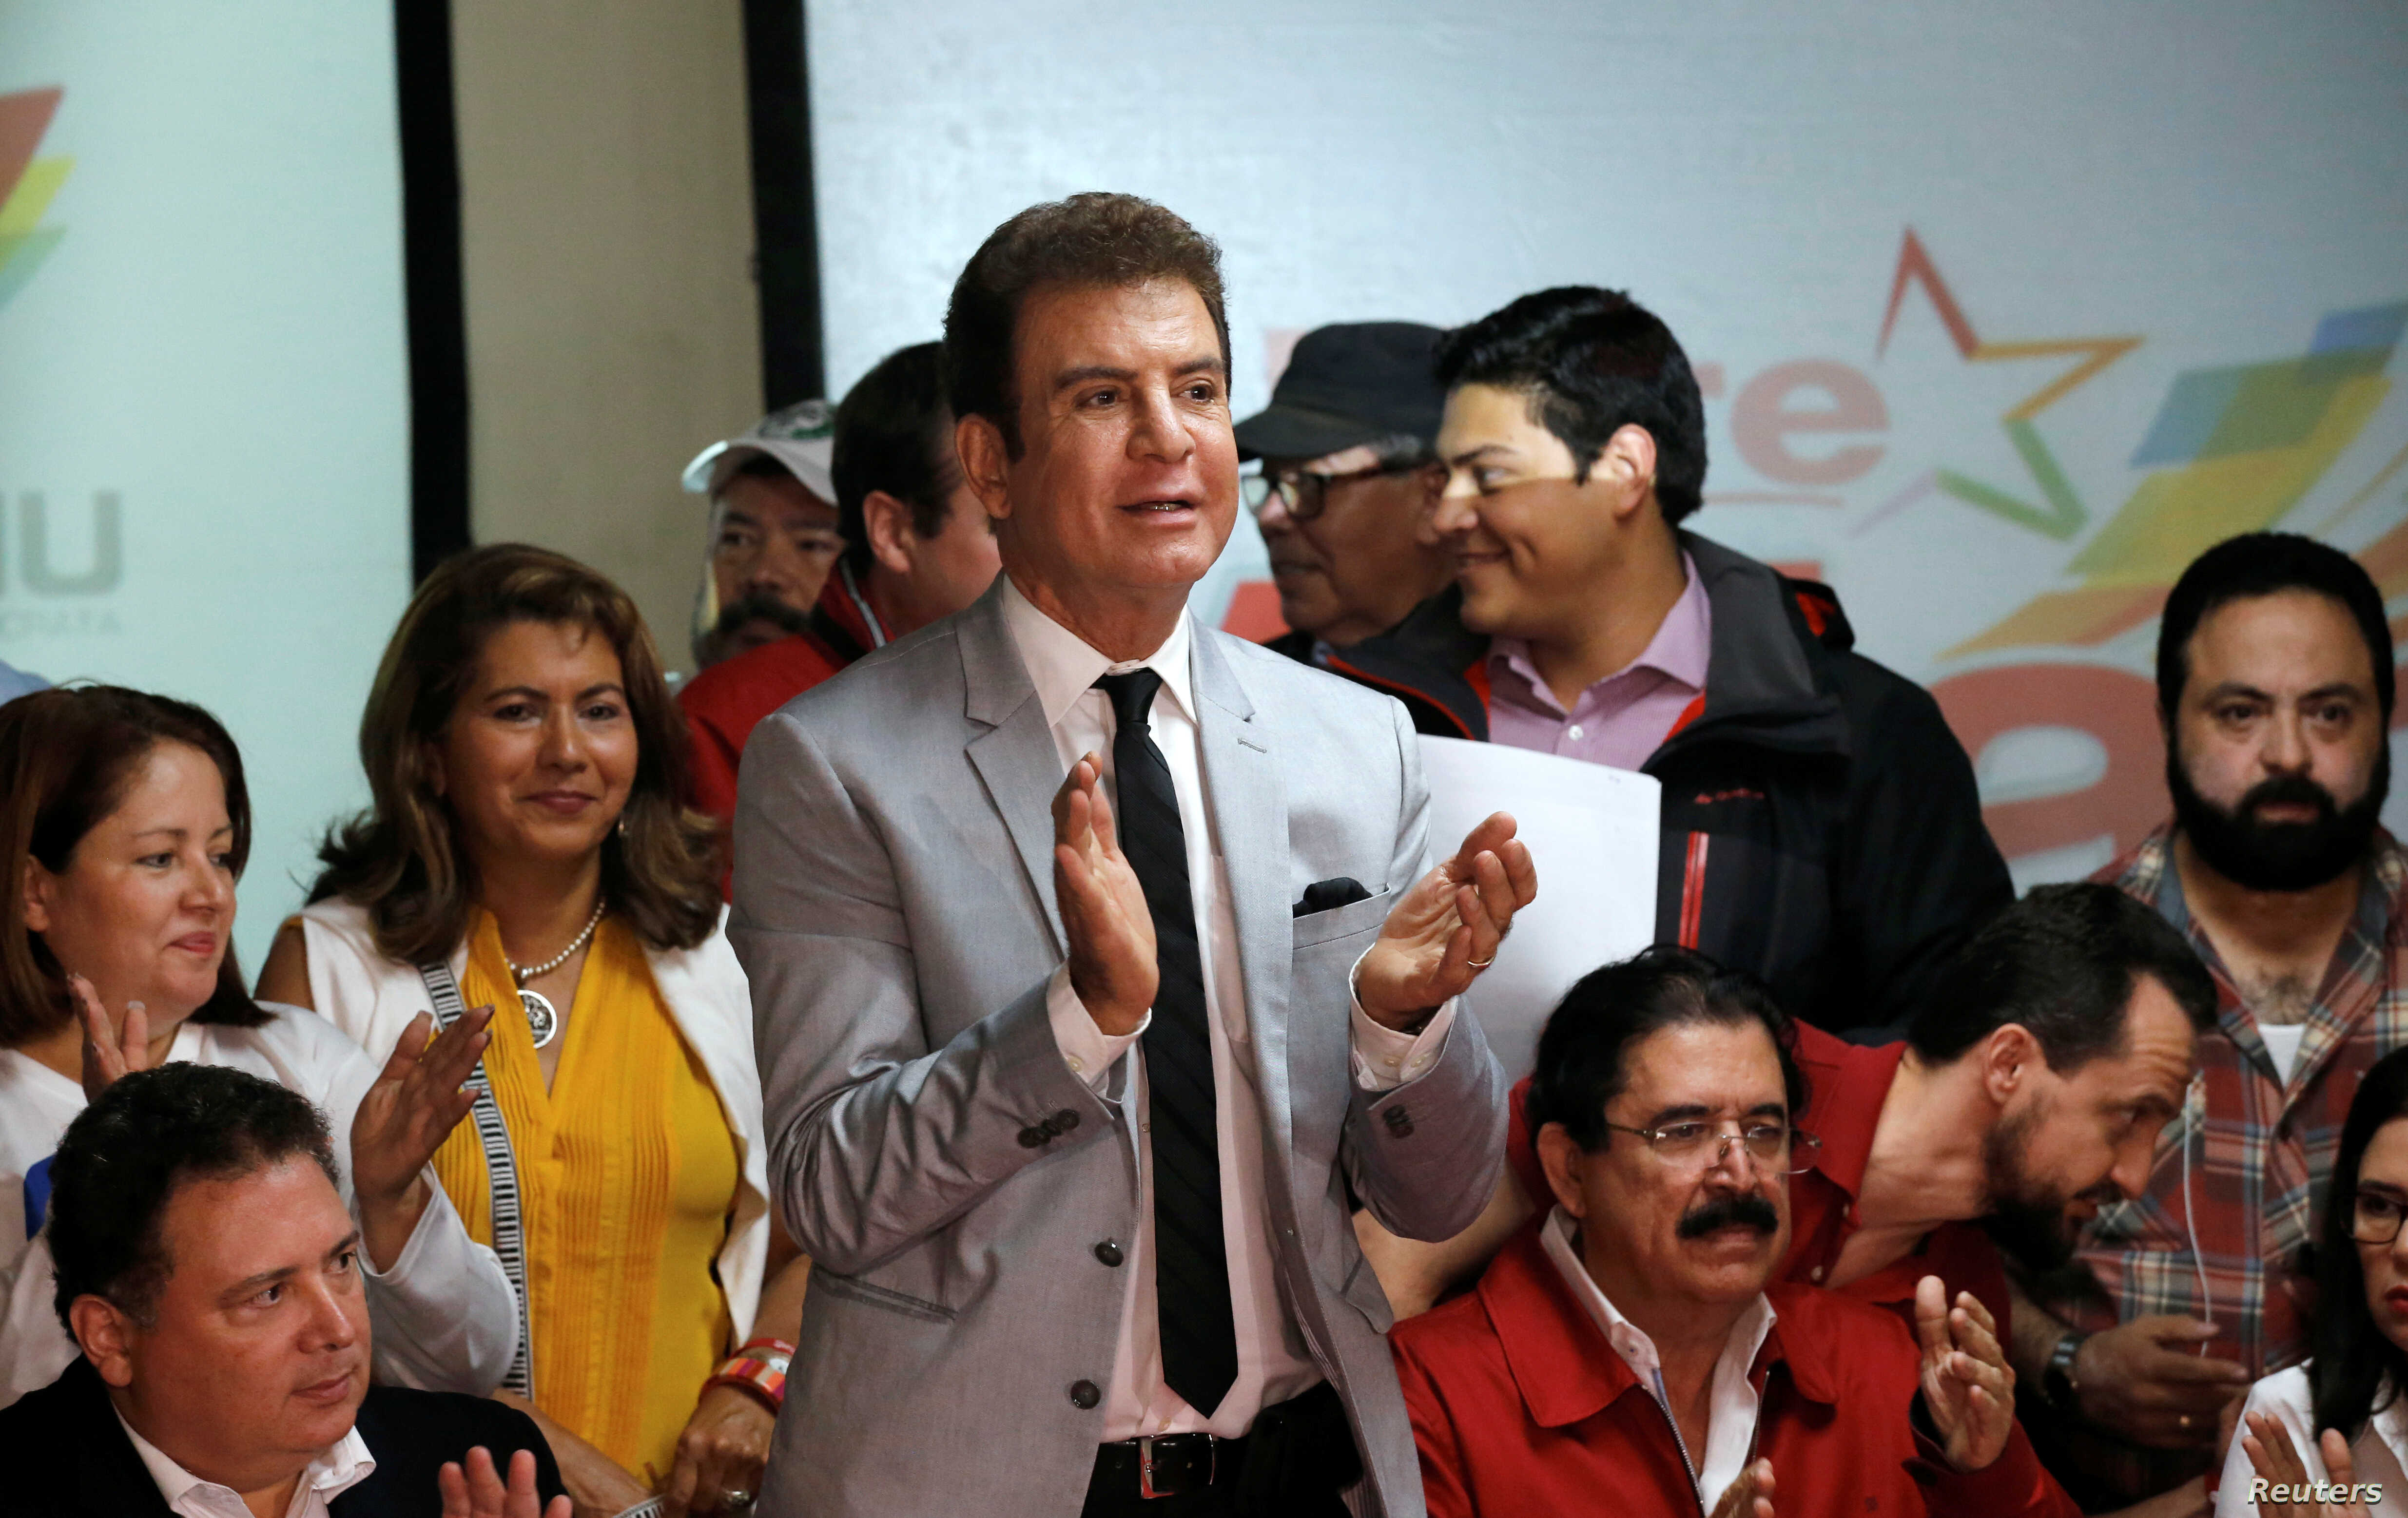 Salvador Nasralla, presidential candidate of the Opposition Alliance Against the Dictatorship applauds next to Former Honduran President Manuel Zelaya as they attend a news conference in Tegucigalpa, Honduras, Dec. 4, 2017.